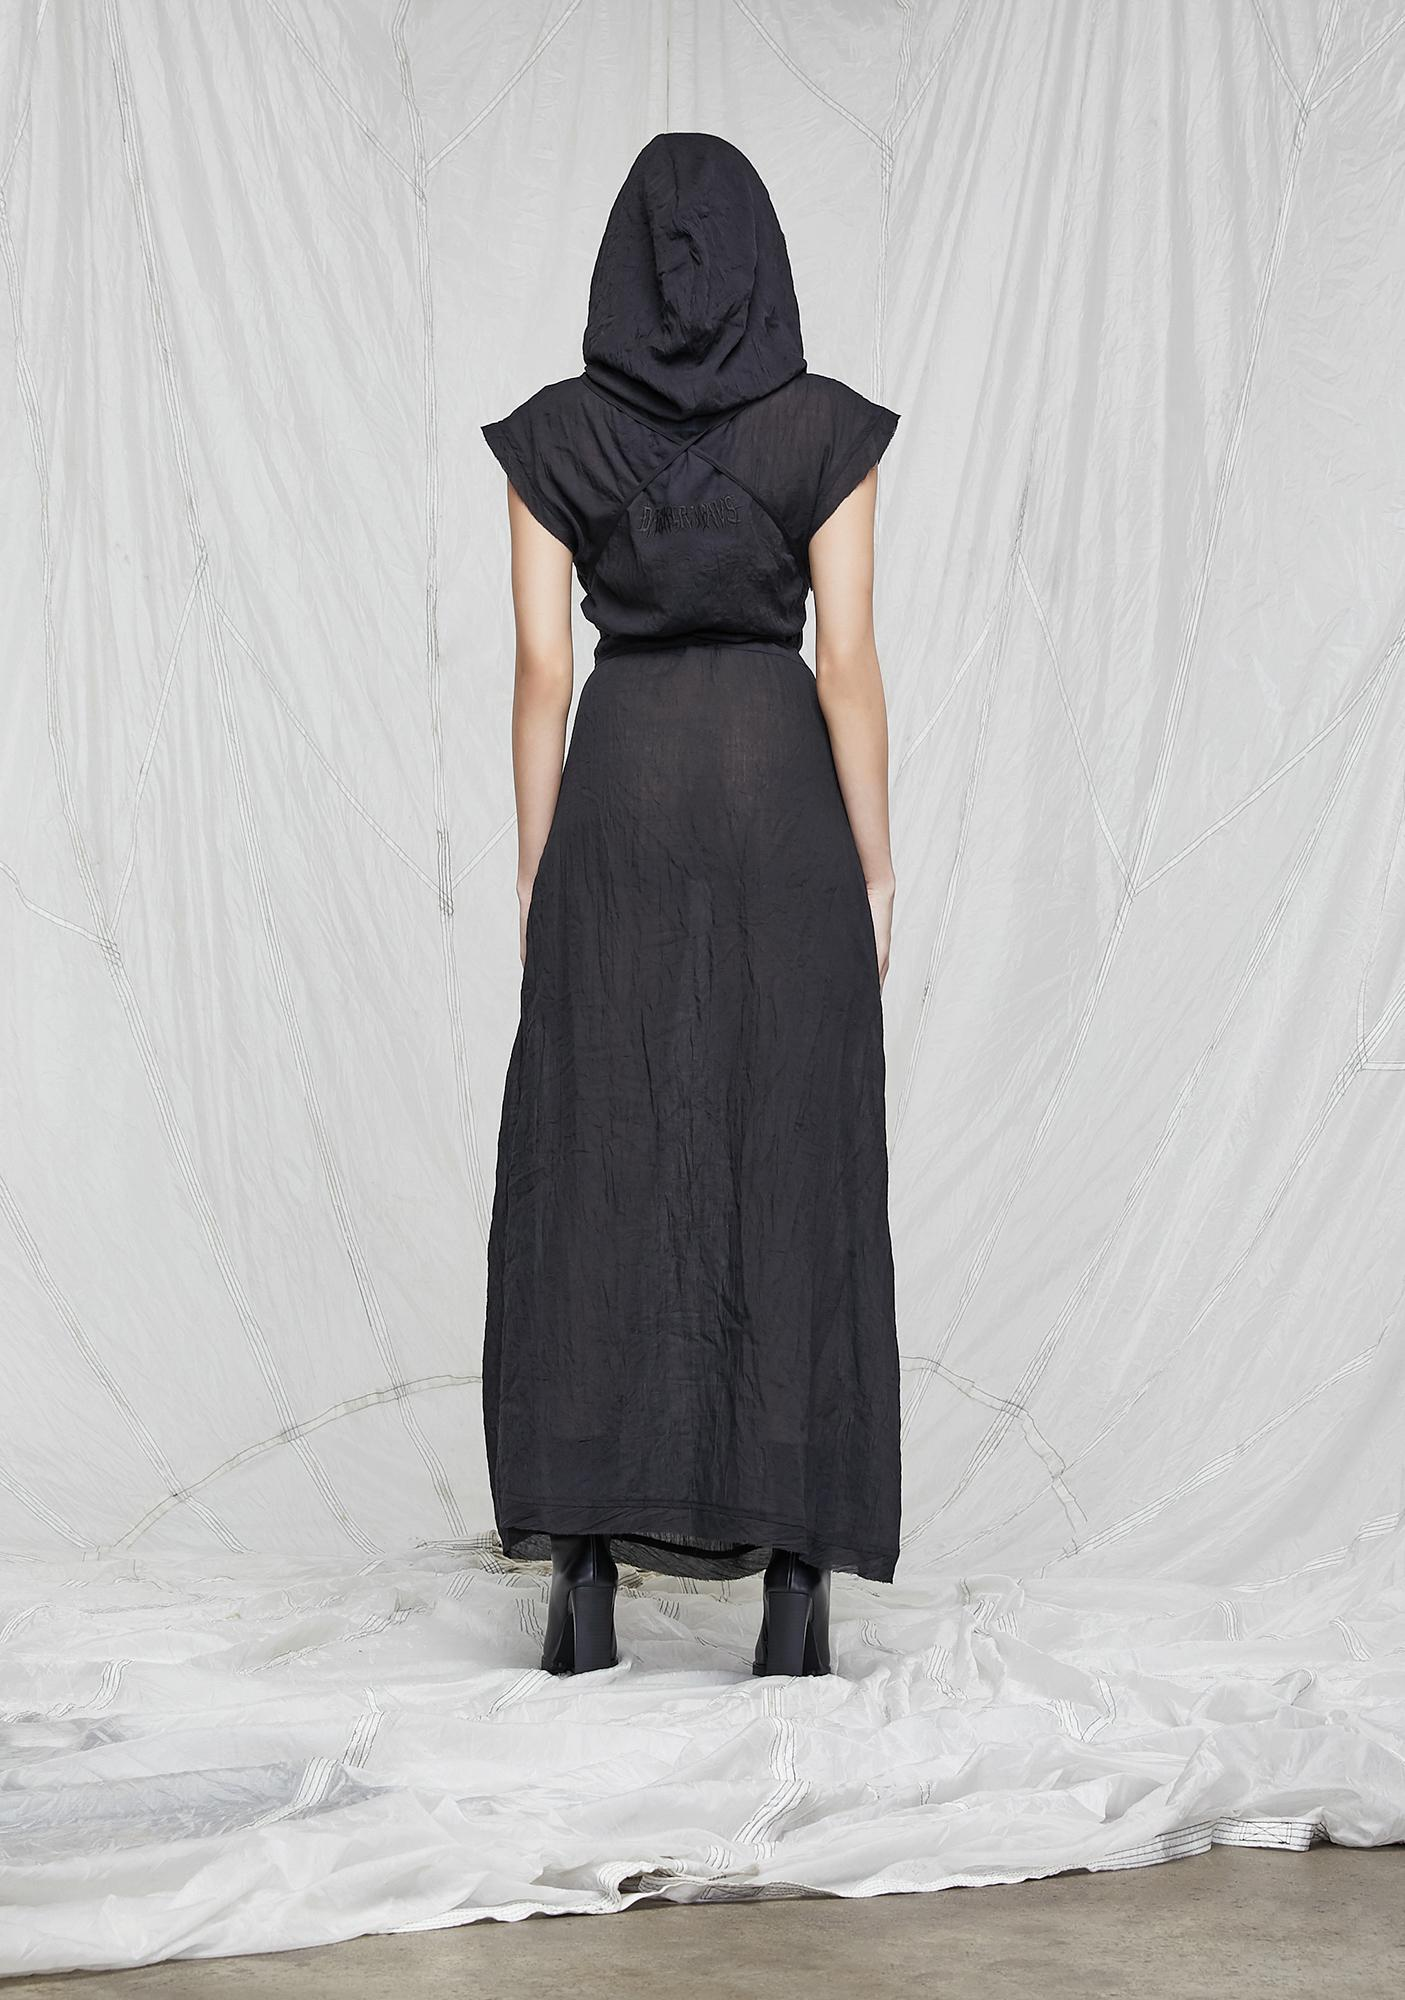 DARKER WAVS Synth Hooded Gauze Tunic Dress And Mask Set